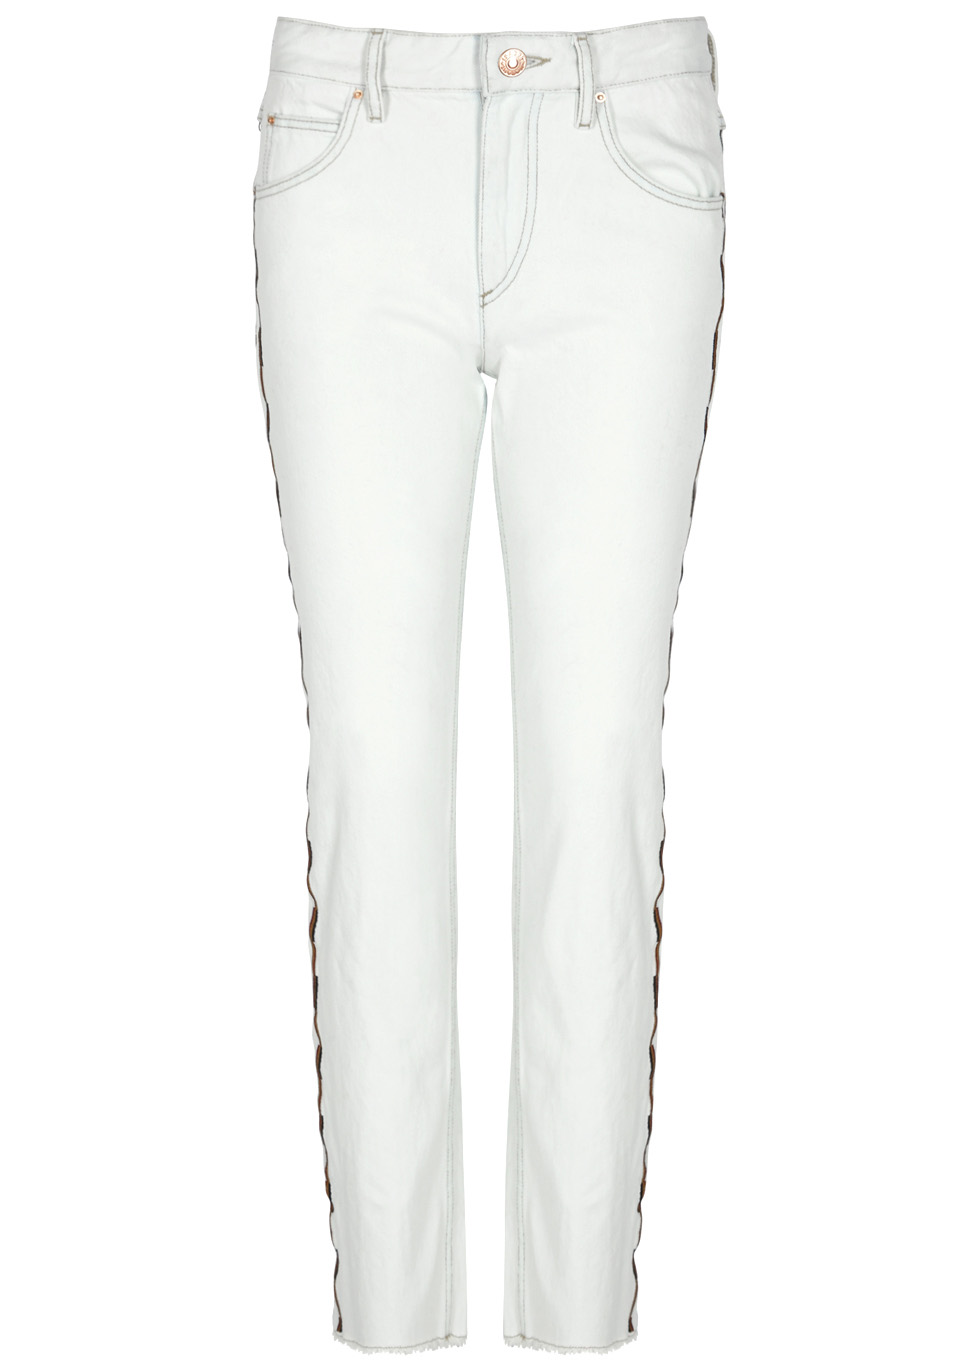 Original Cheap Online Colan embroidered jeans Isabel Marant Cheap Sale Shop Offer Cheap Sale Brand New Unisex Outlet Visit New PkpyyyA